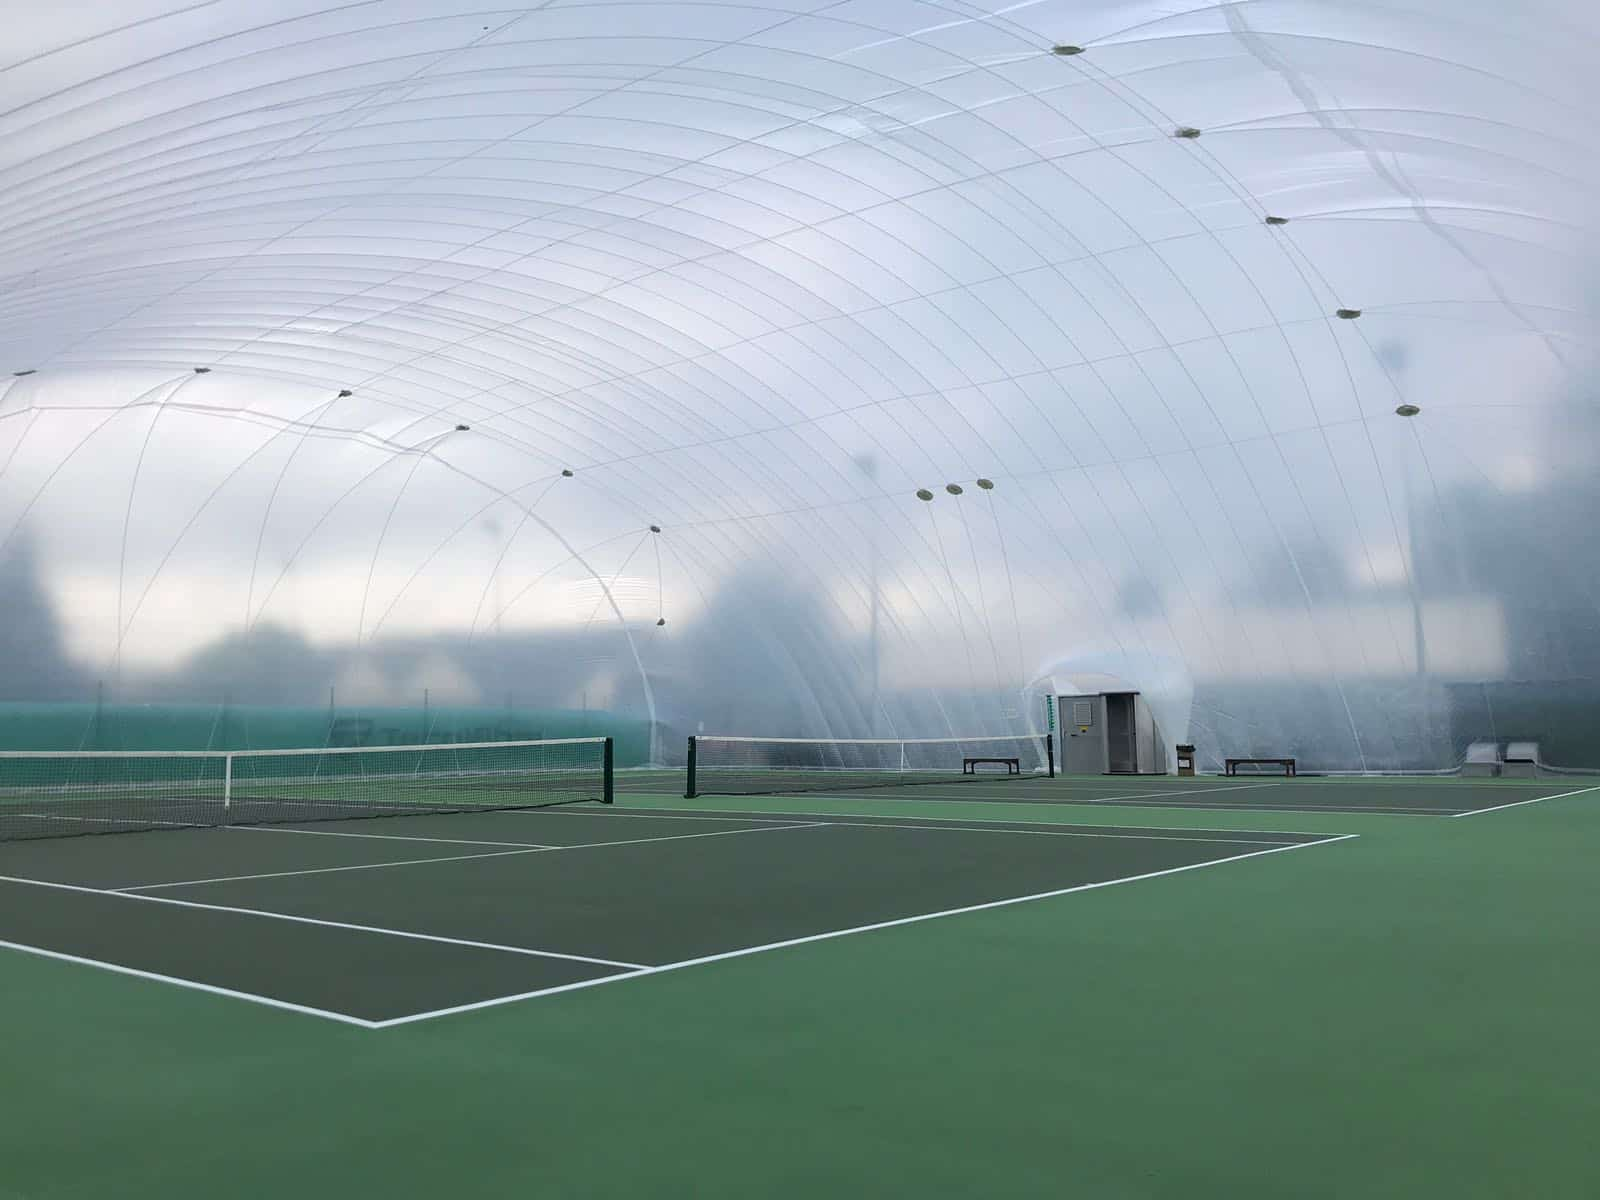 inflatable tennis structure